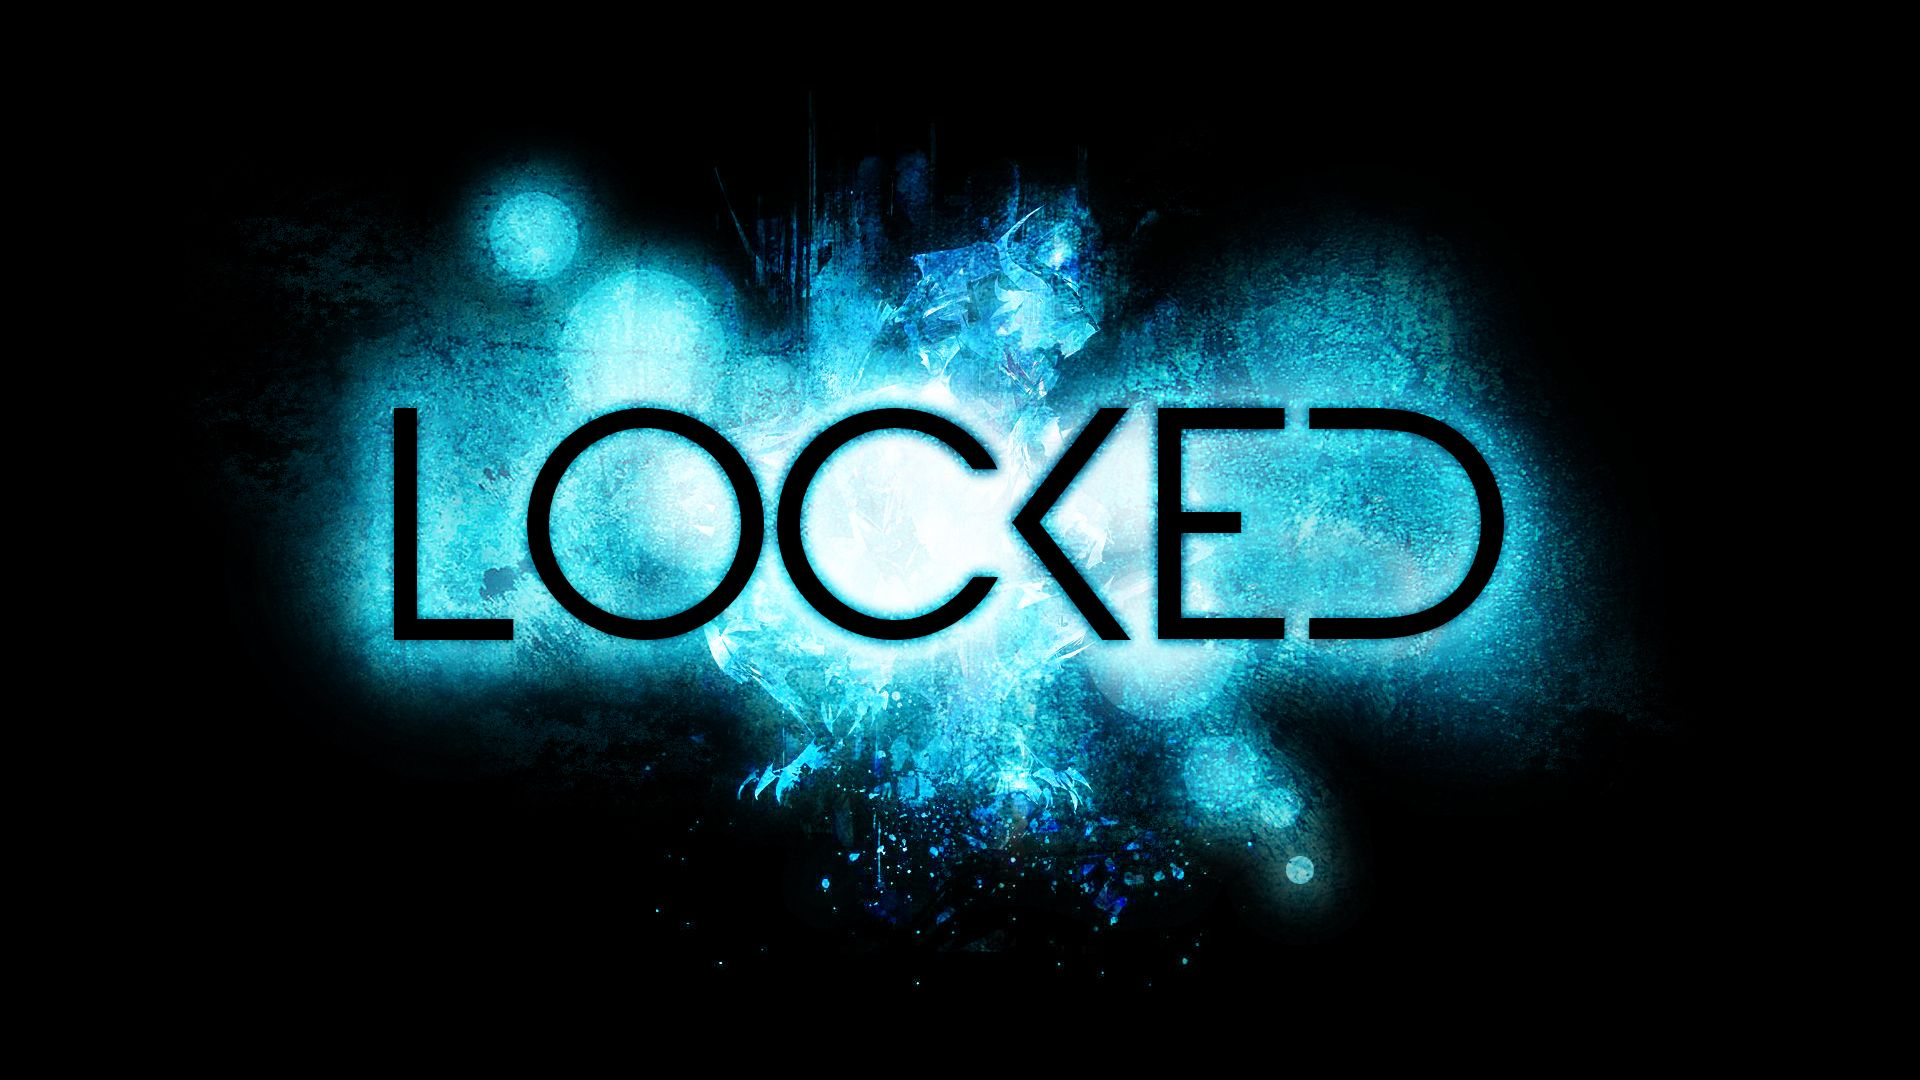 Lock Screen Pc Wallpapers Wallpaper Cave Enjoy cool lock screen wallpapers … for android, ios, macox, linux, windows and any others gadget or pc. lock screen pc wallpapers wallpaper cave